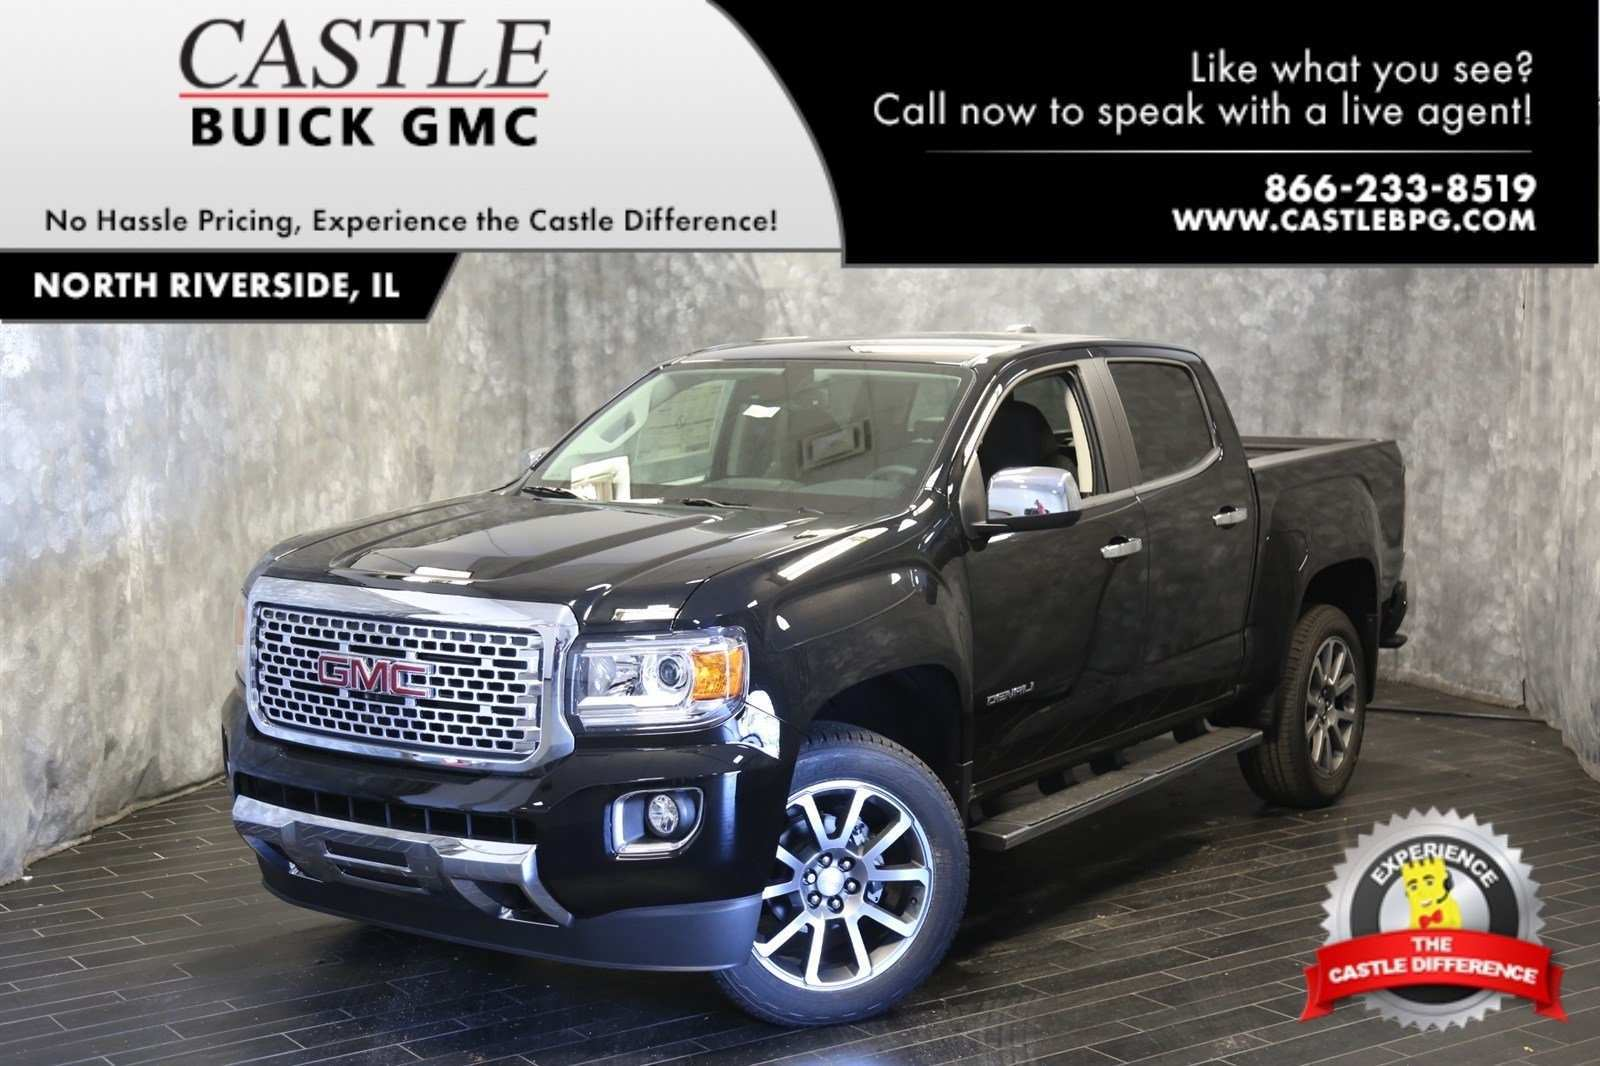 50 New Best Gmc 2019 Canyon Release Date Exterior Performance with Best Gmc 2019 Canyon Release Date Exterior